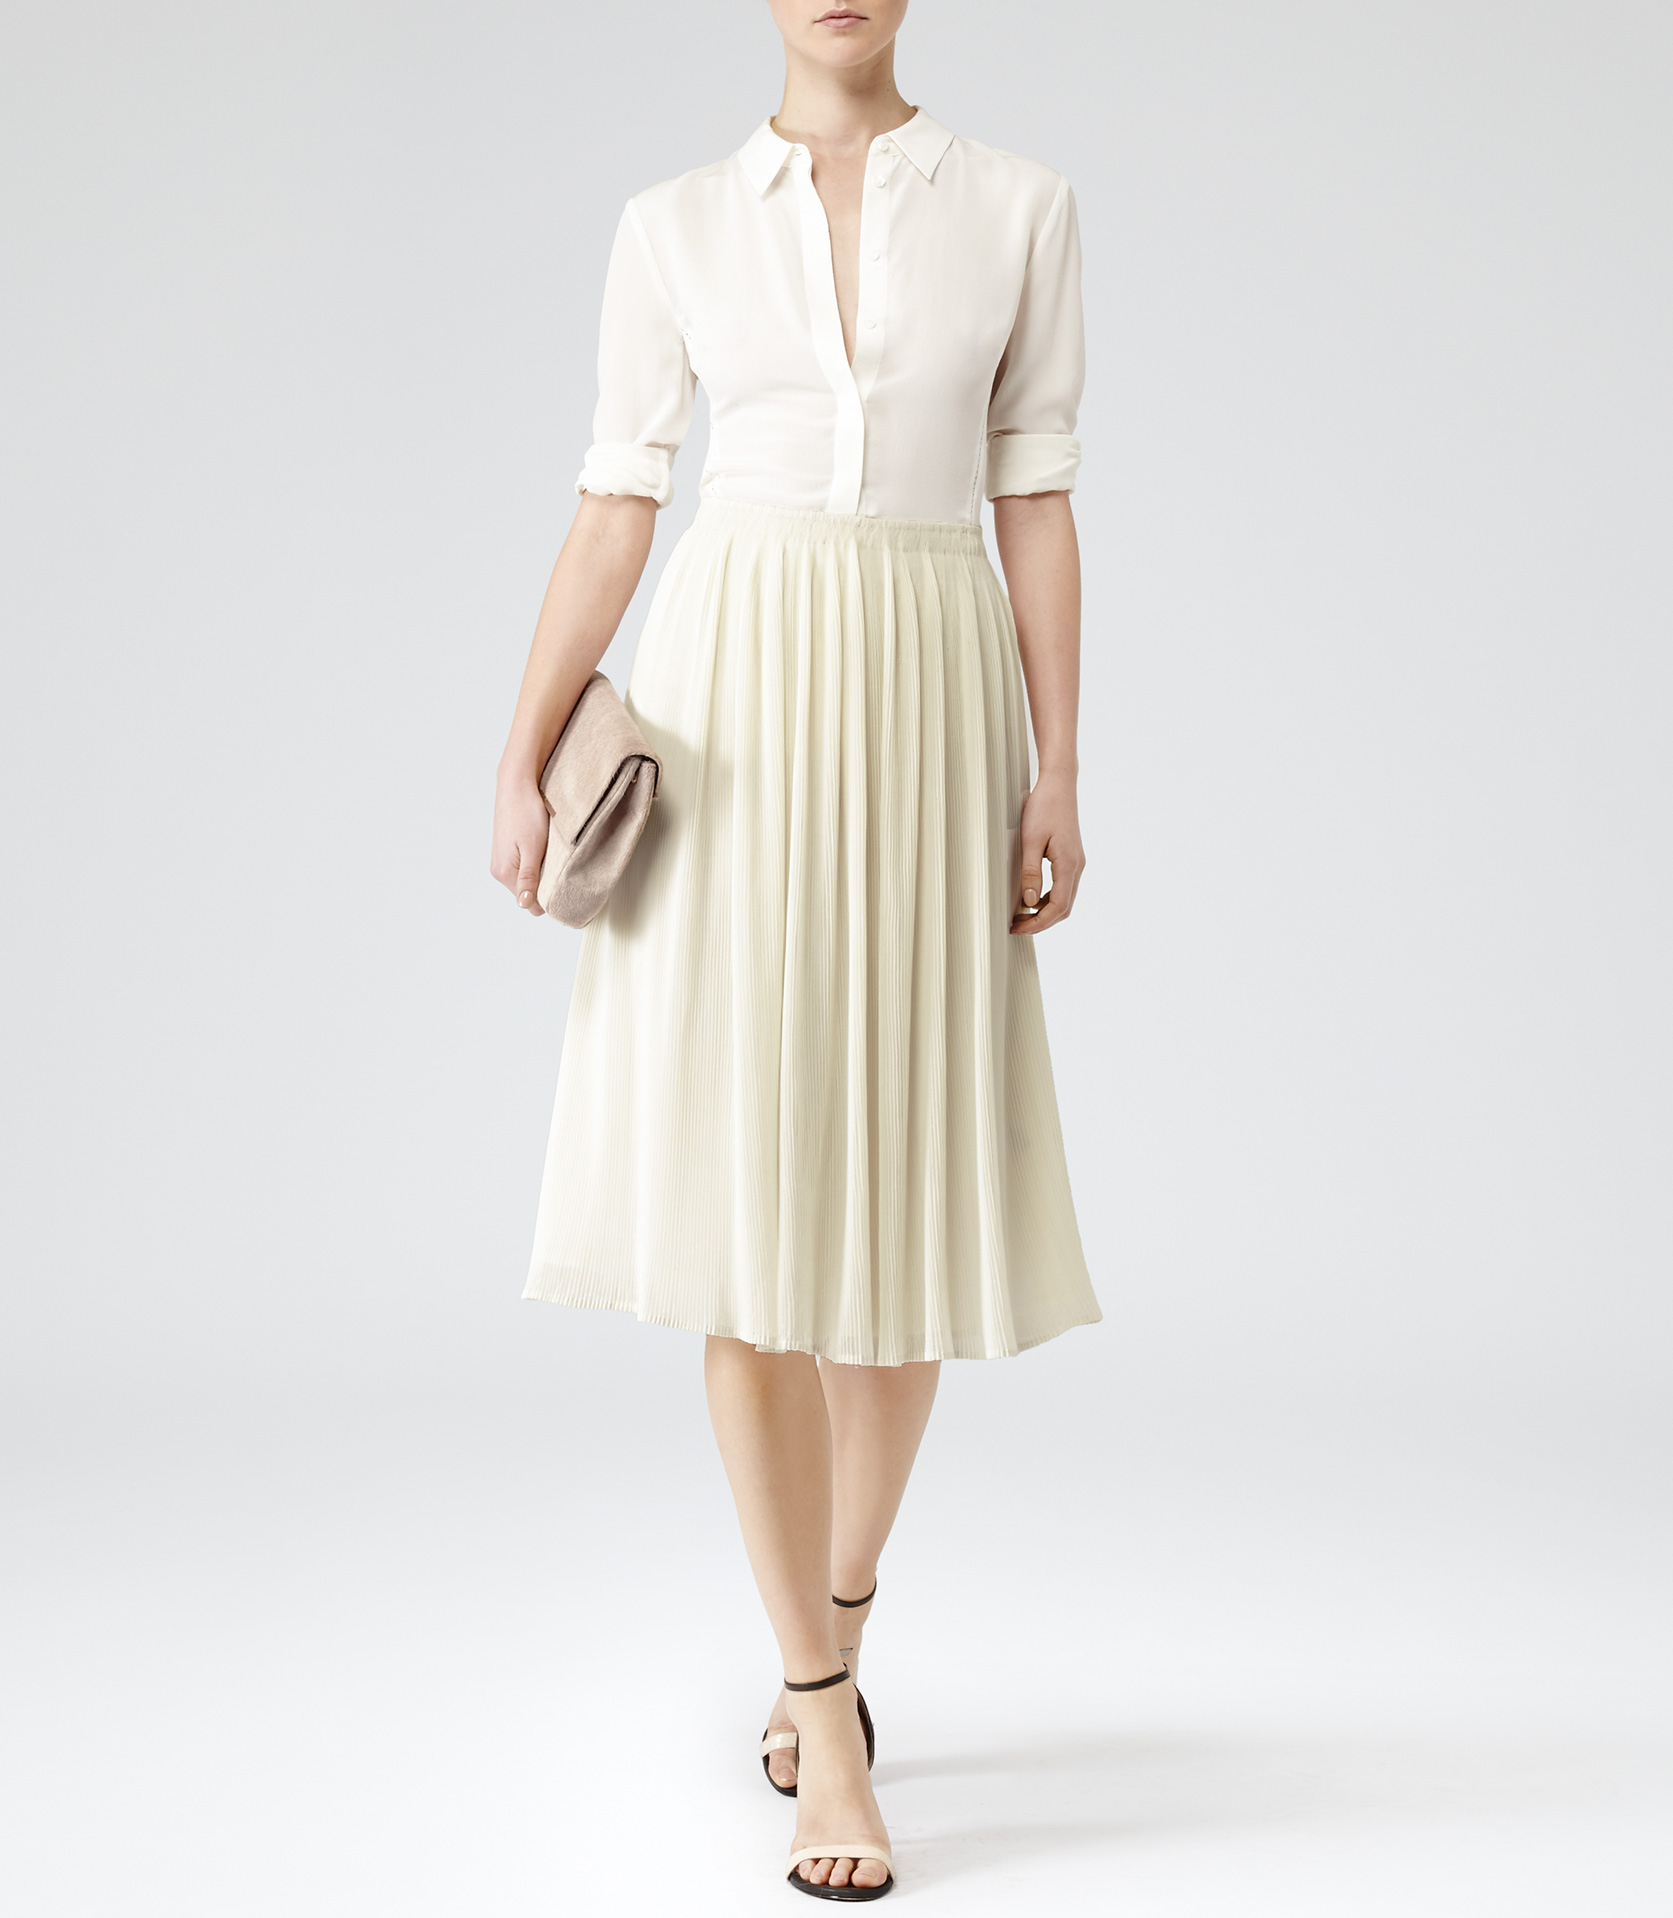 Reiss Helena Micro Pleat Midi Skirt in White | Lyst